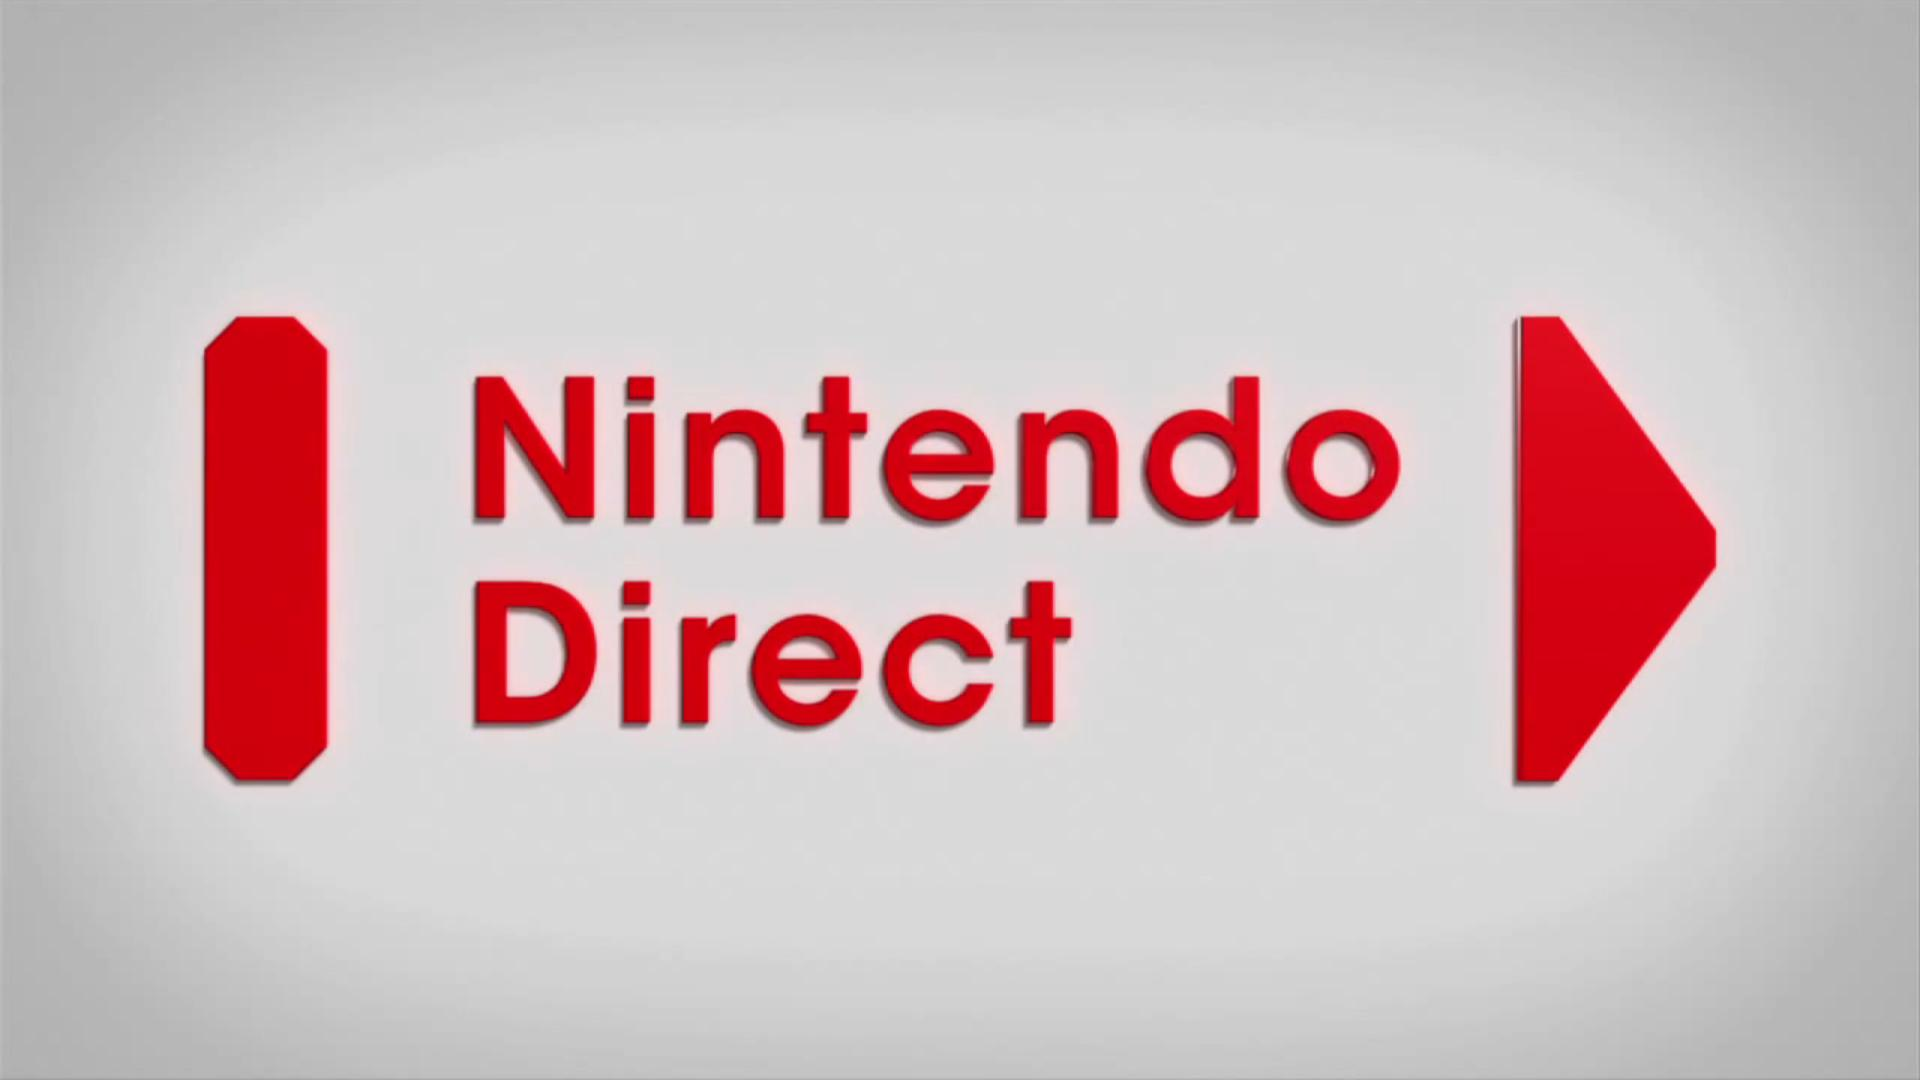 ¿Se perdieron la Nintendo Direct? ¡Aquí esta completa! [Video]